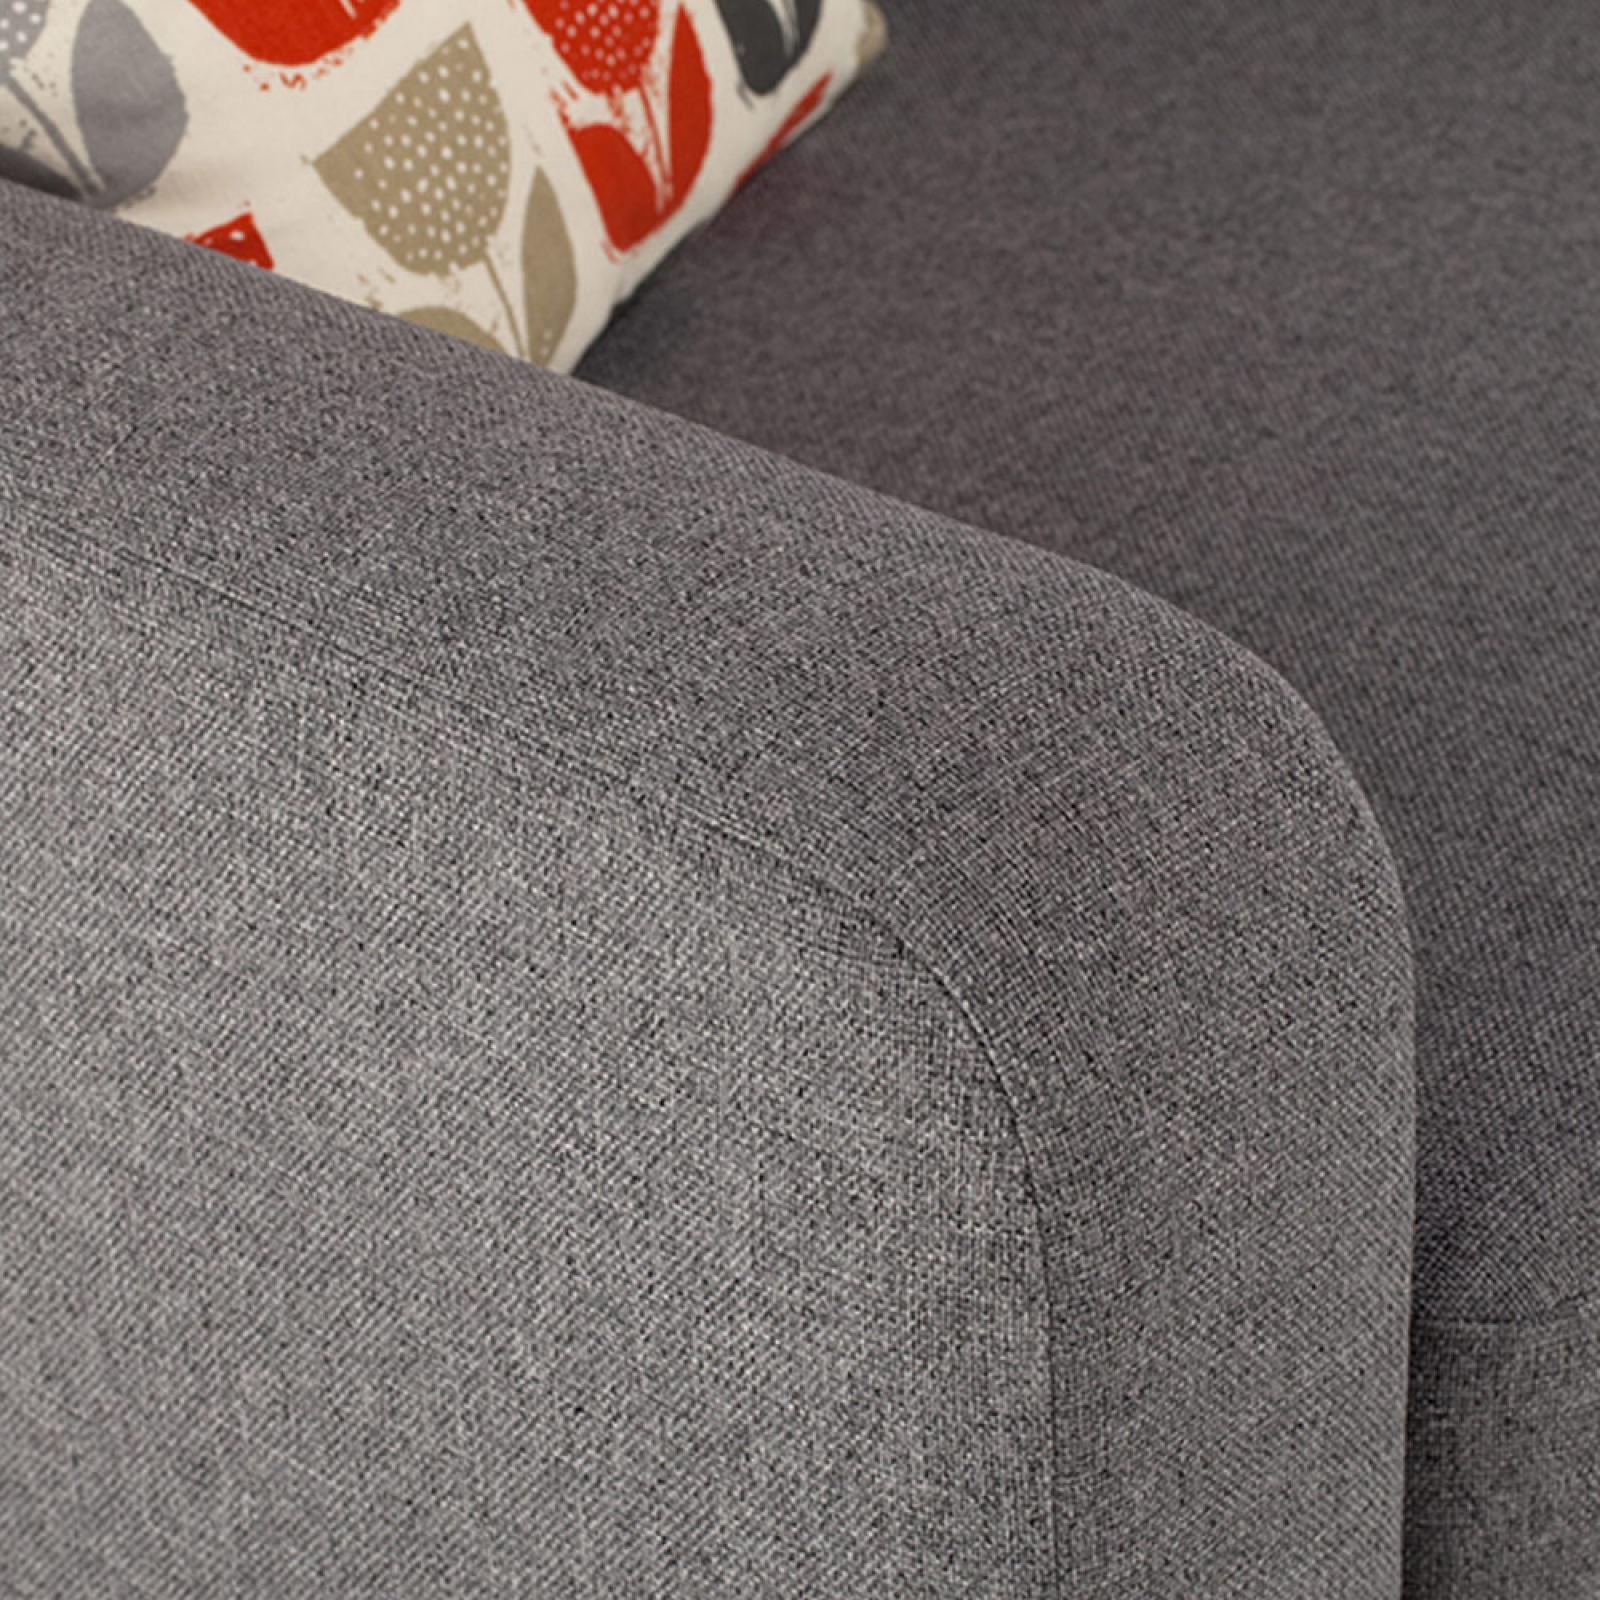 Lisbon Snuggler Sofa Chair by Whitemeadow - Fabric Grade C thumbnails